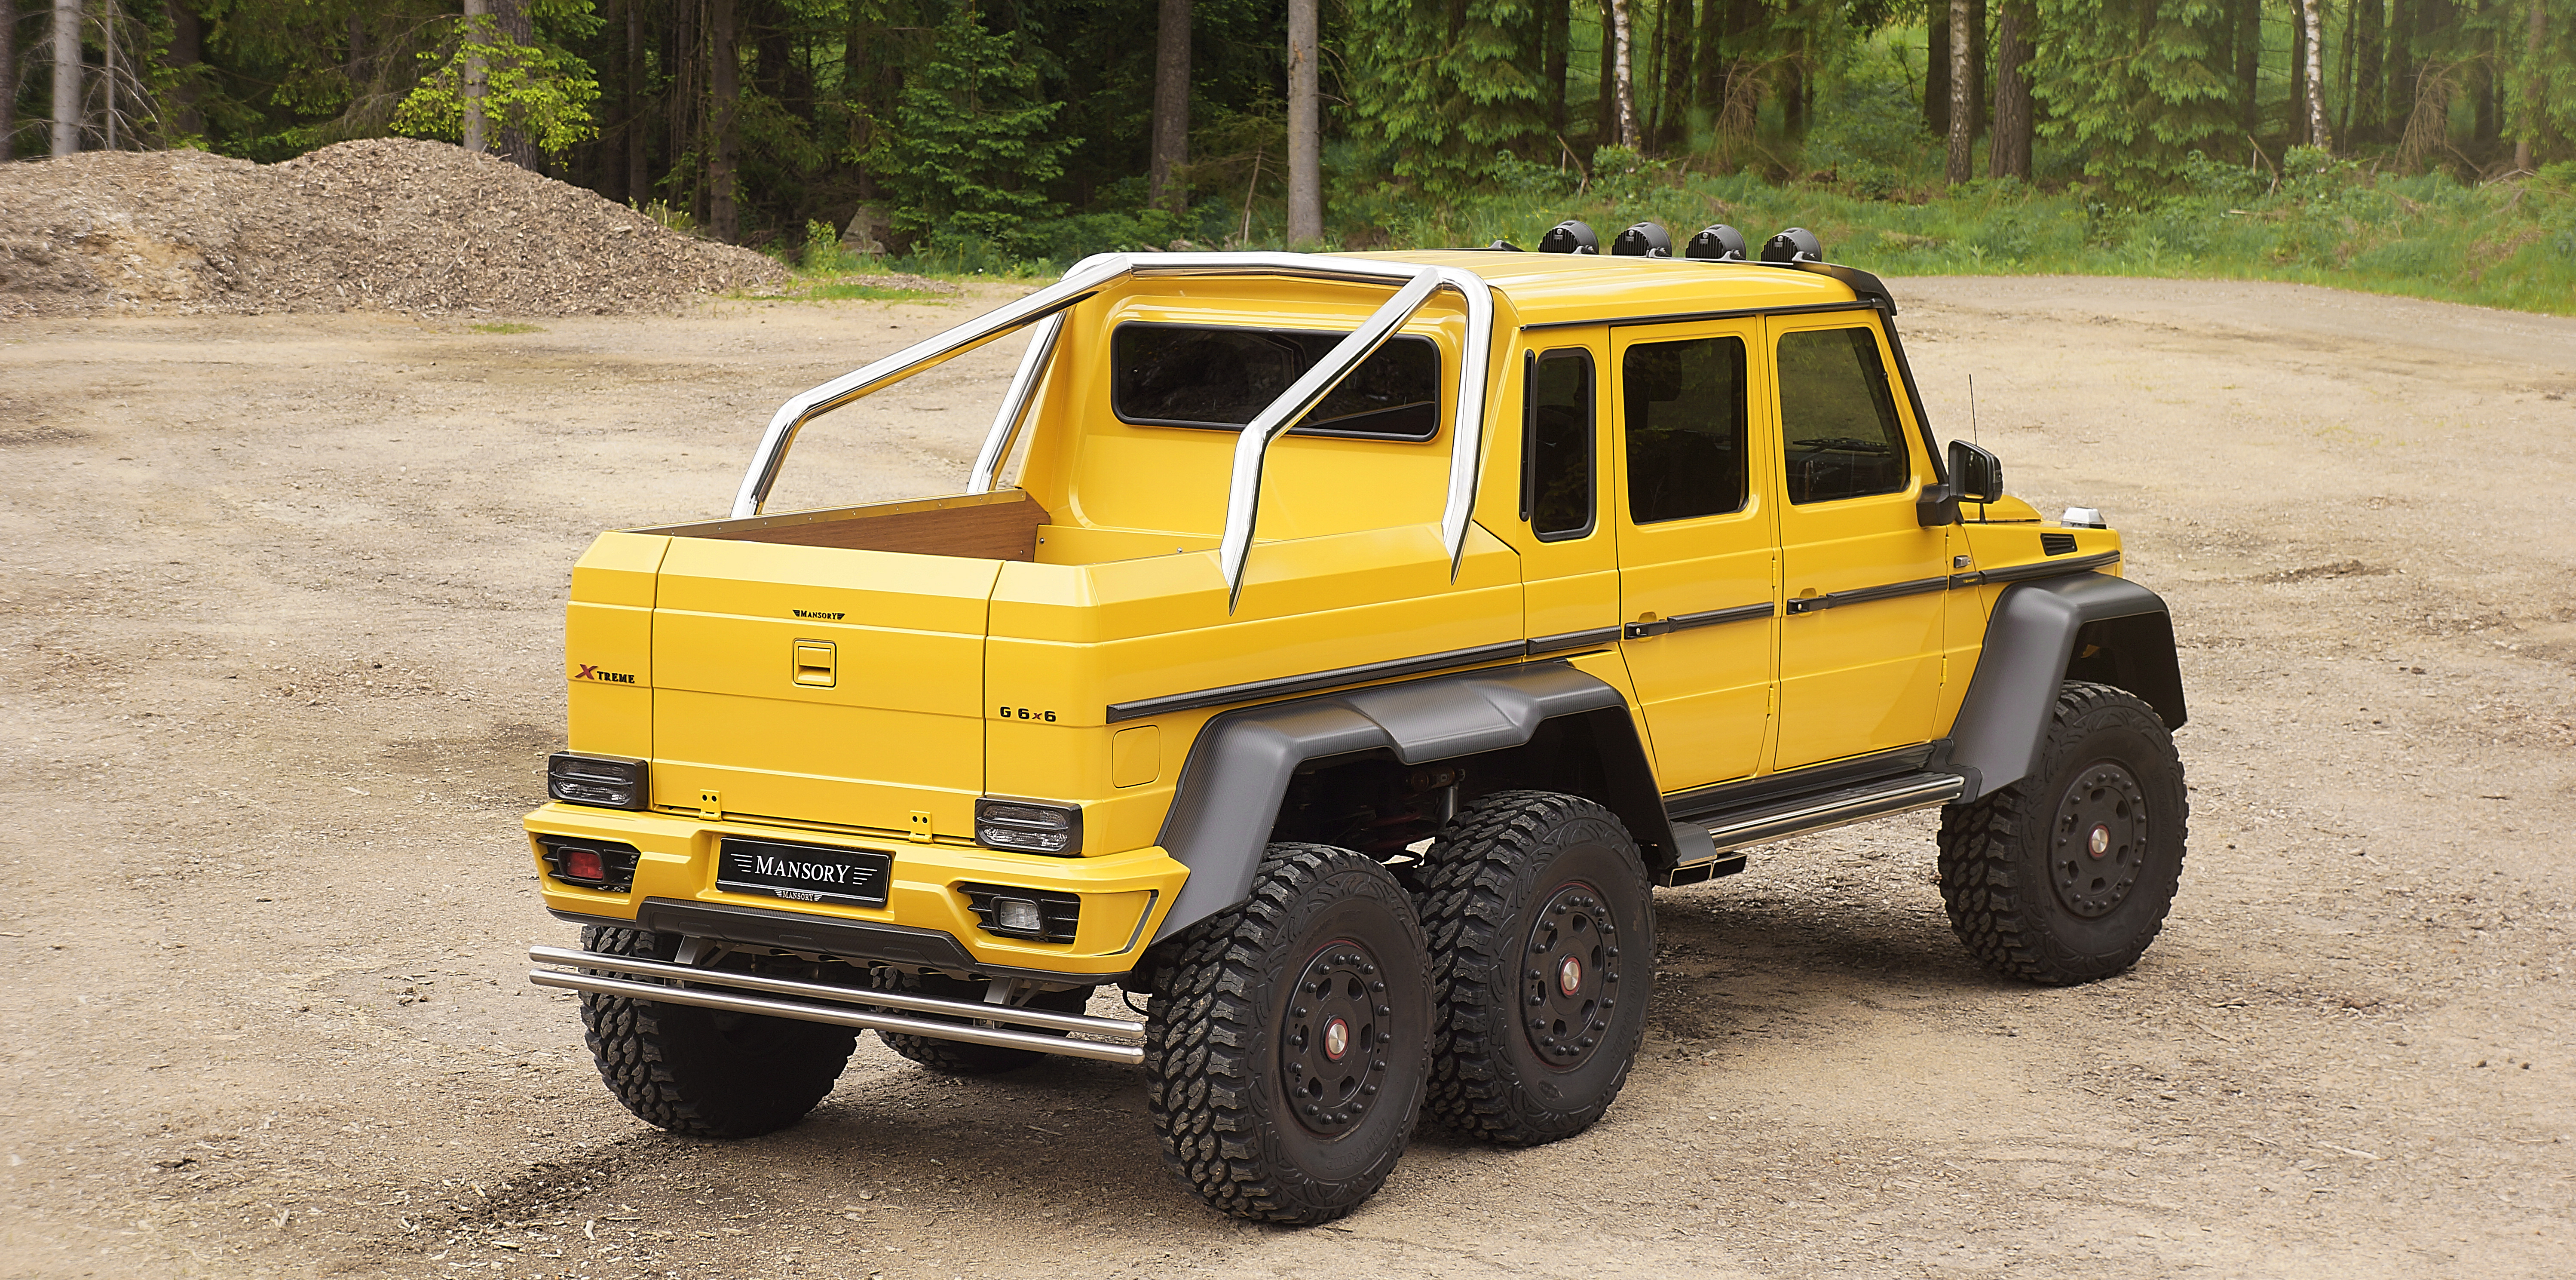 Mercedes 6X6 For Sale >> Gronos 6x6 Mansory